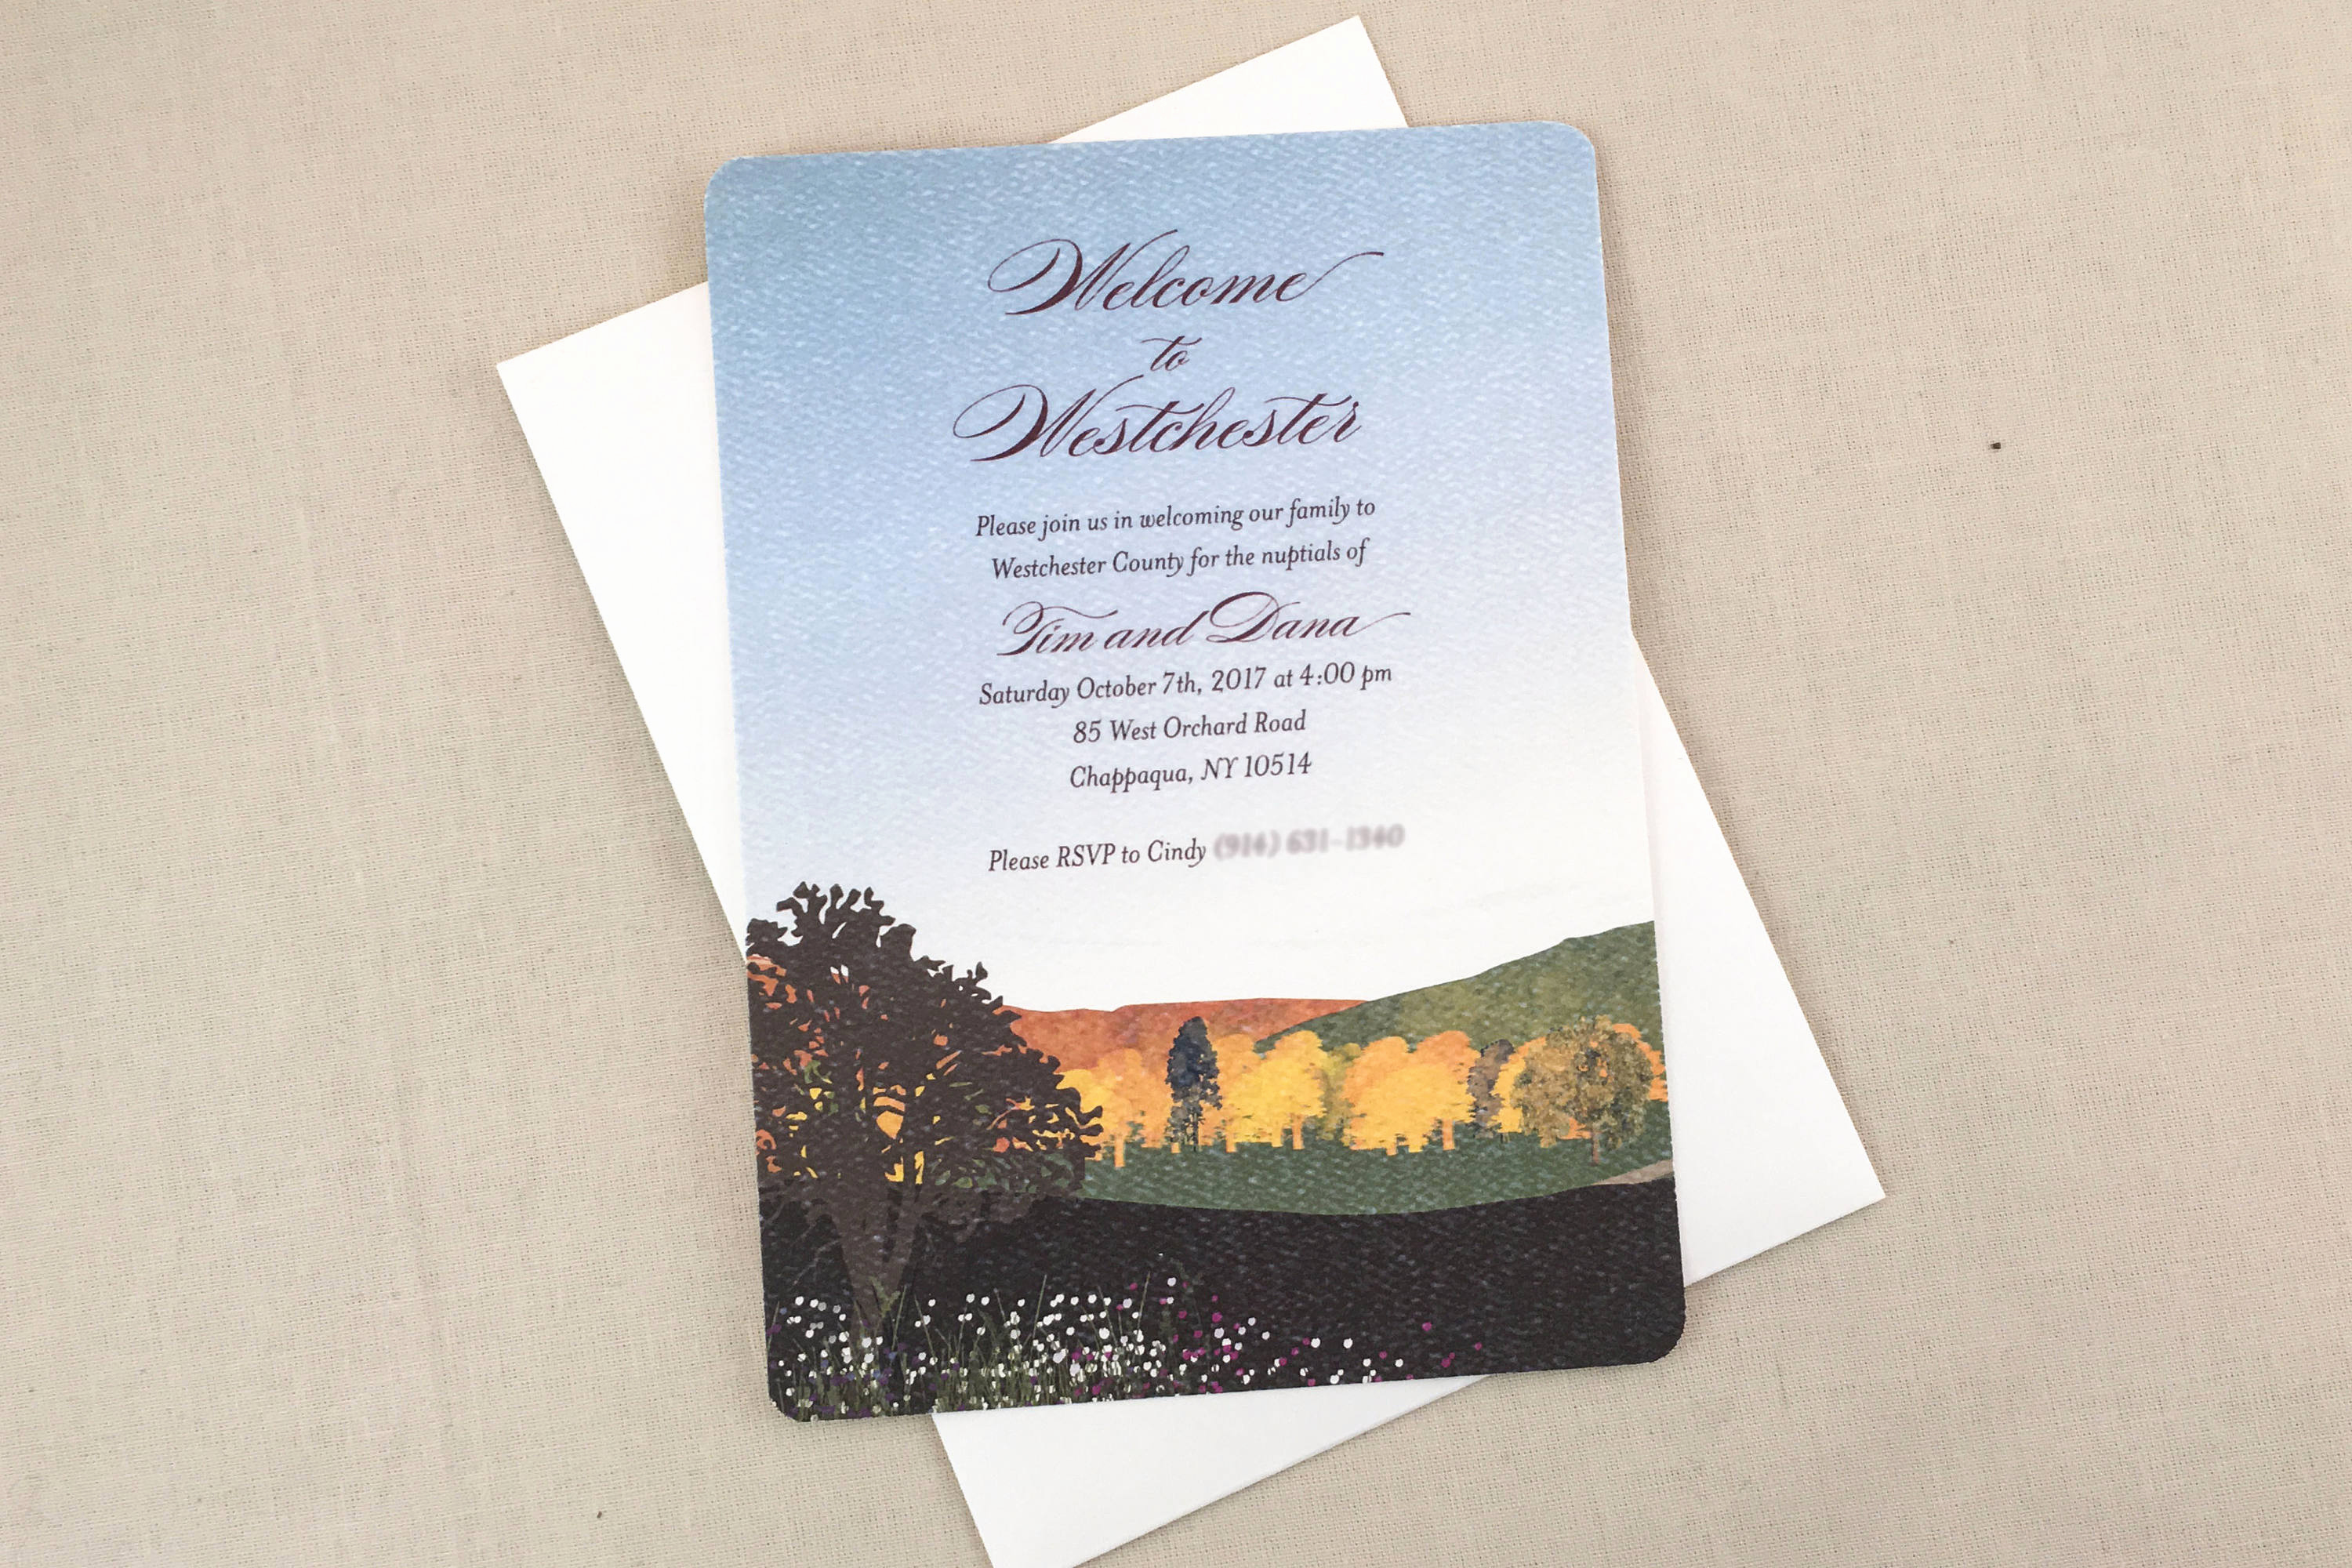 Wedding Welcome Party Invitation Elegant Wel E Party Fall Mountain Landscape 5×7 Wedding